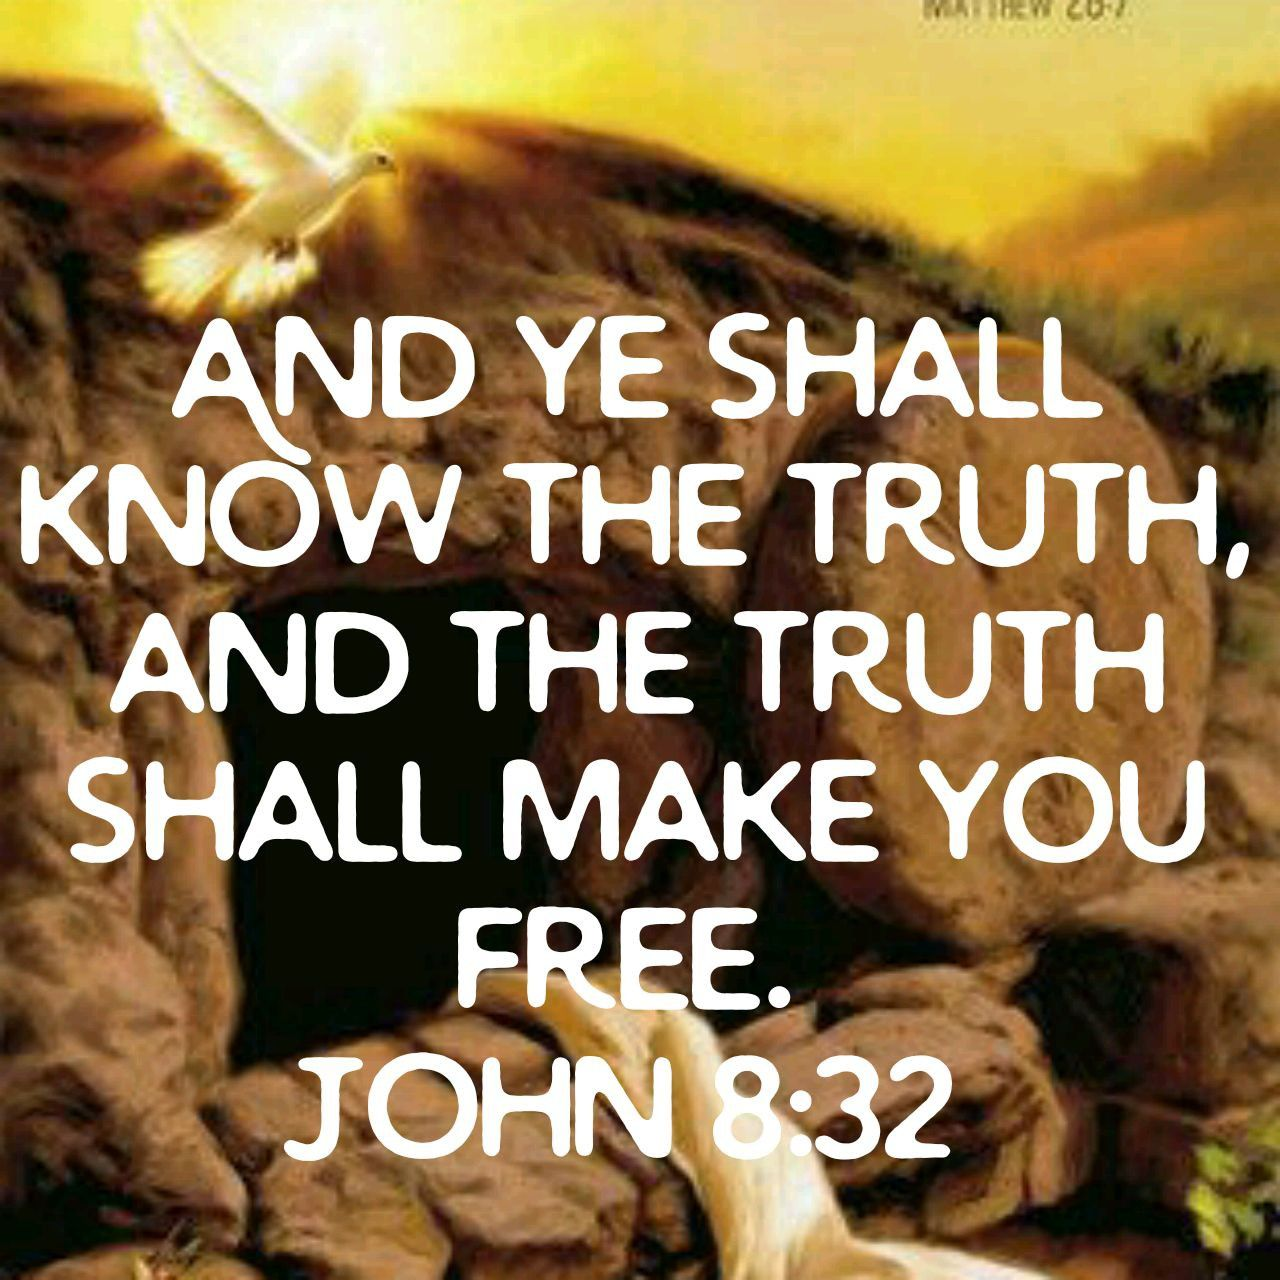 And ye shall know the truth, and the truth shall make you free ...